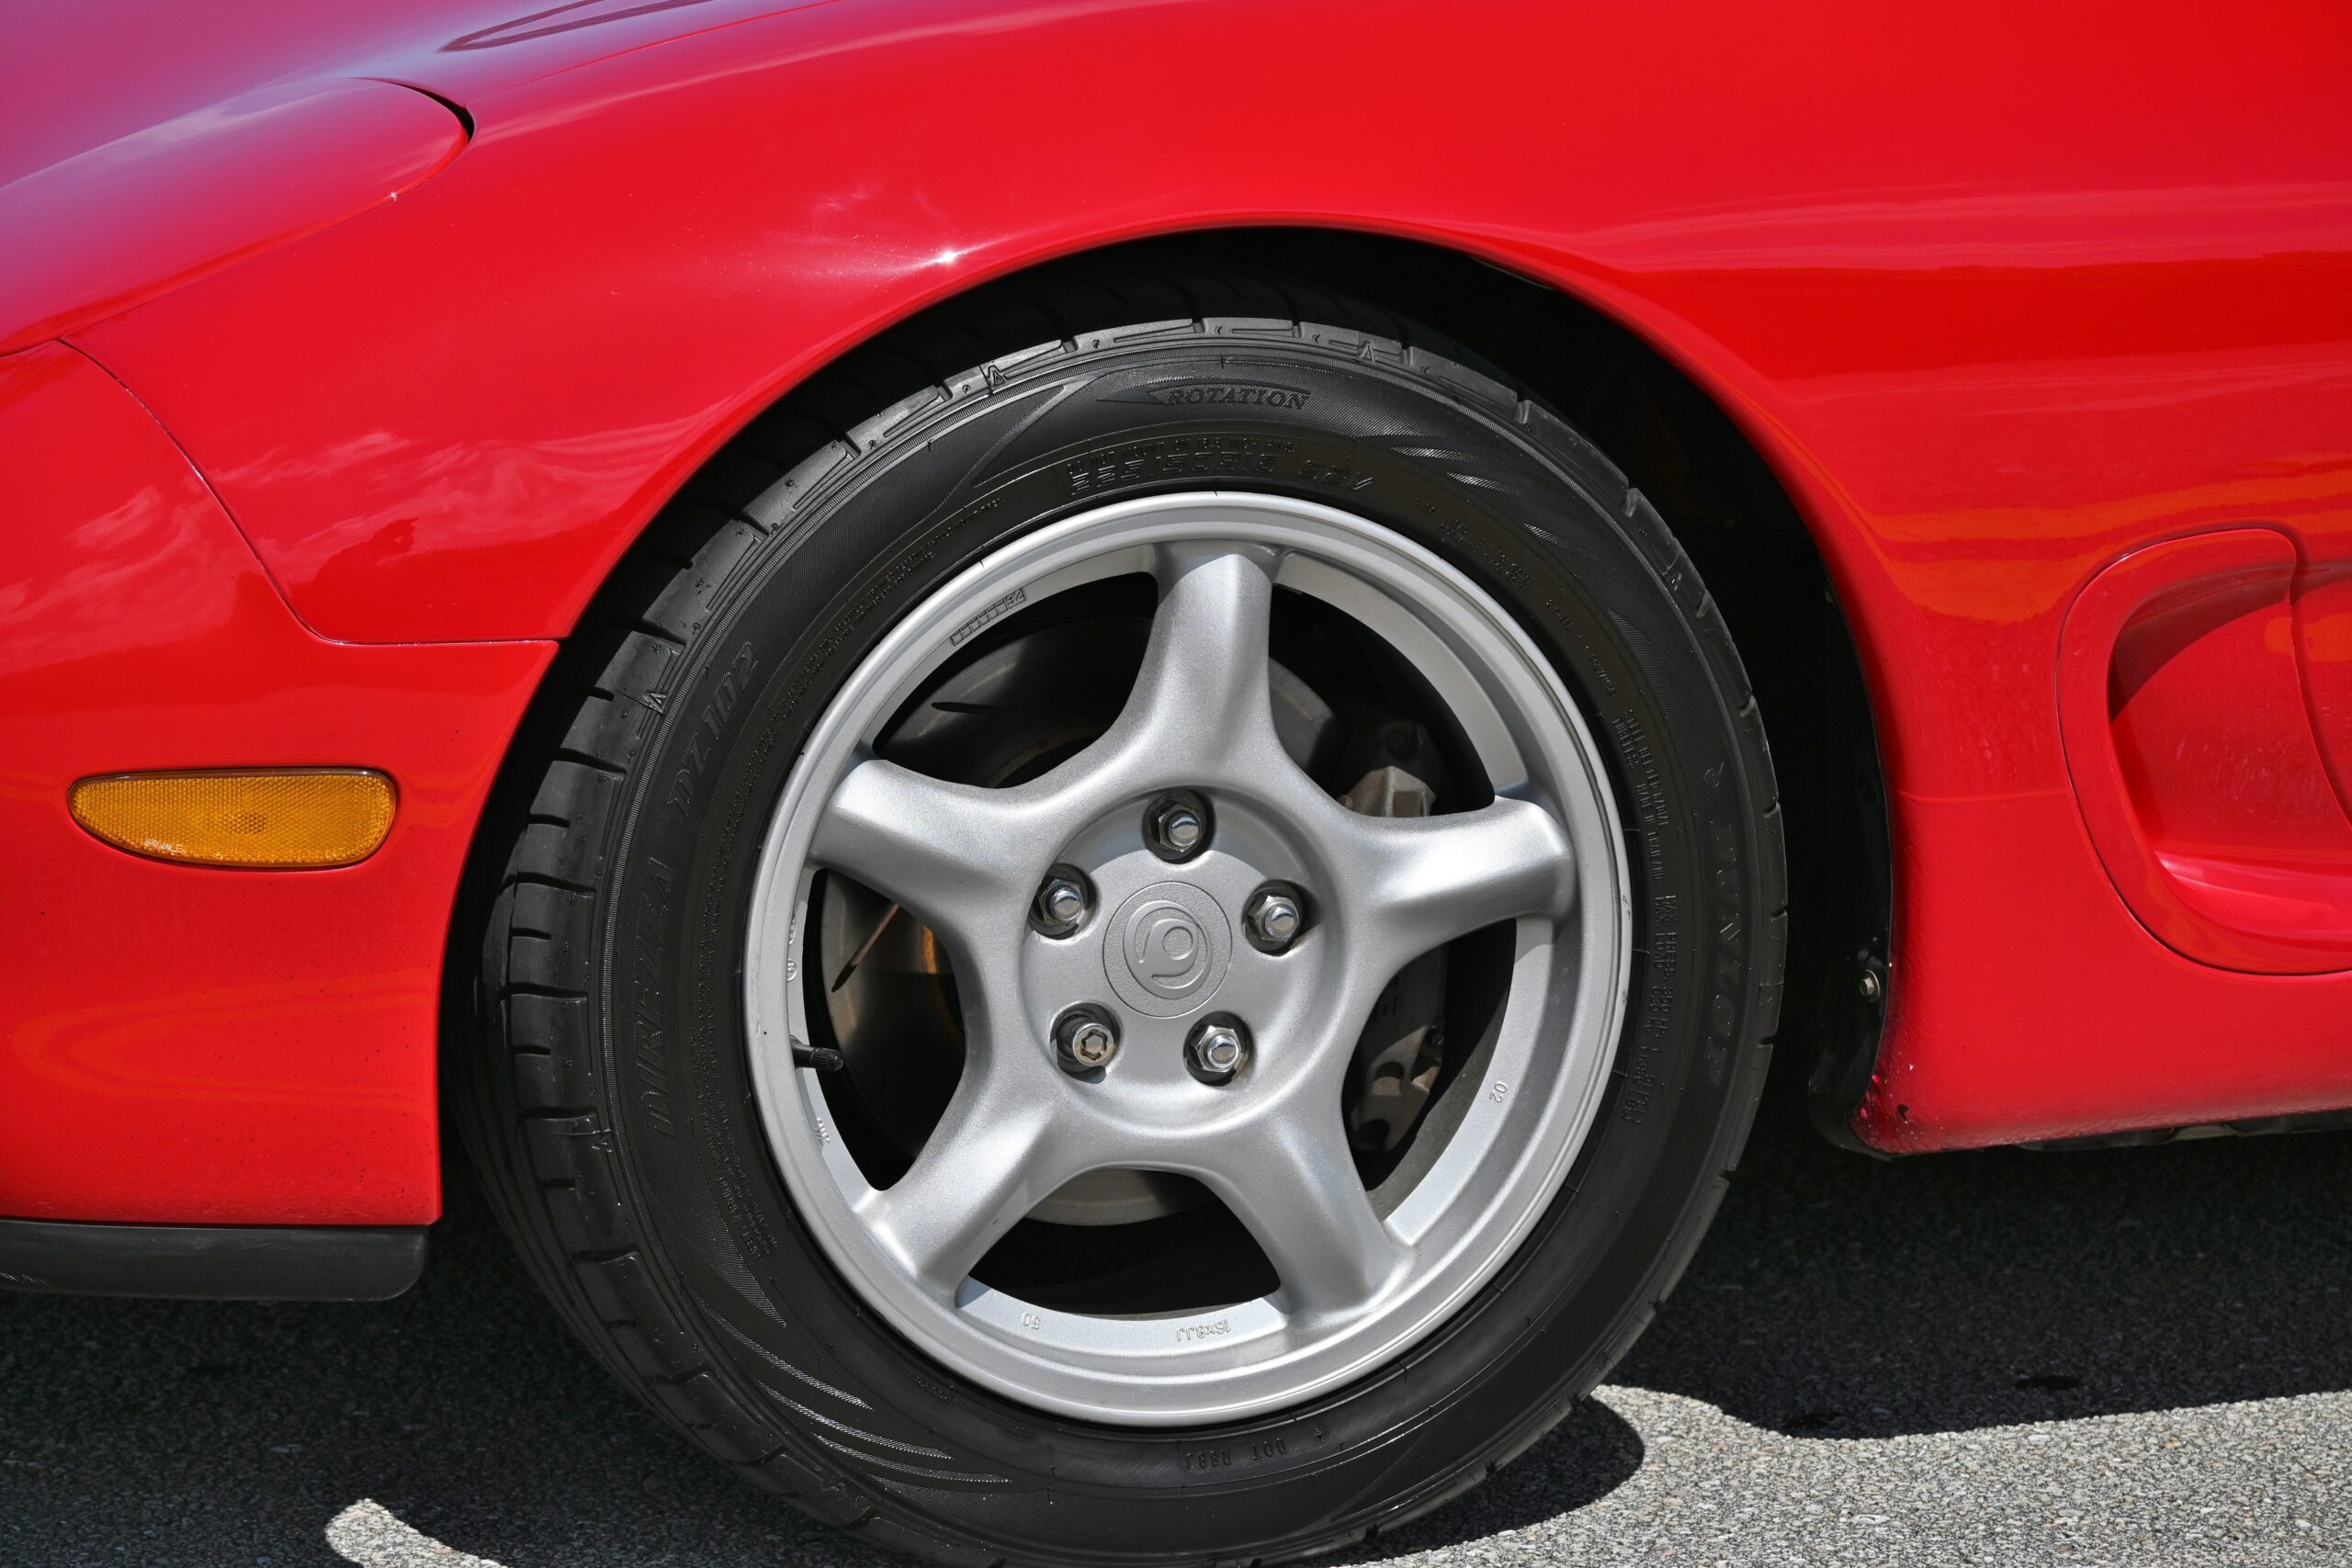 1993 Mazda RX-7 FD3S Twin Turbo Only 41K Miles – Desirable Color Combo -5 Speed Manual- Freshly Serviced